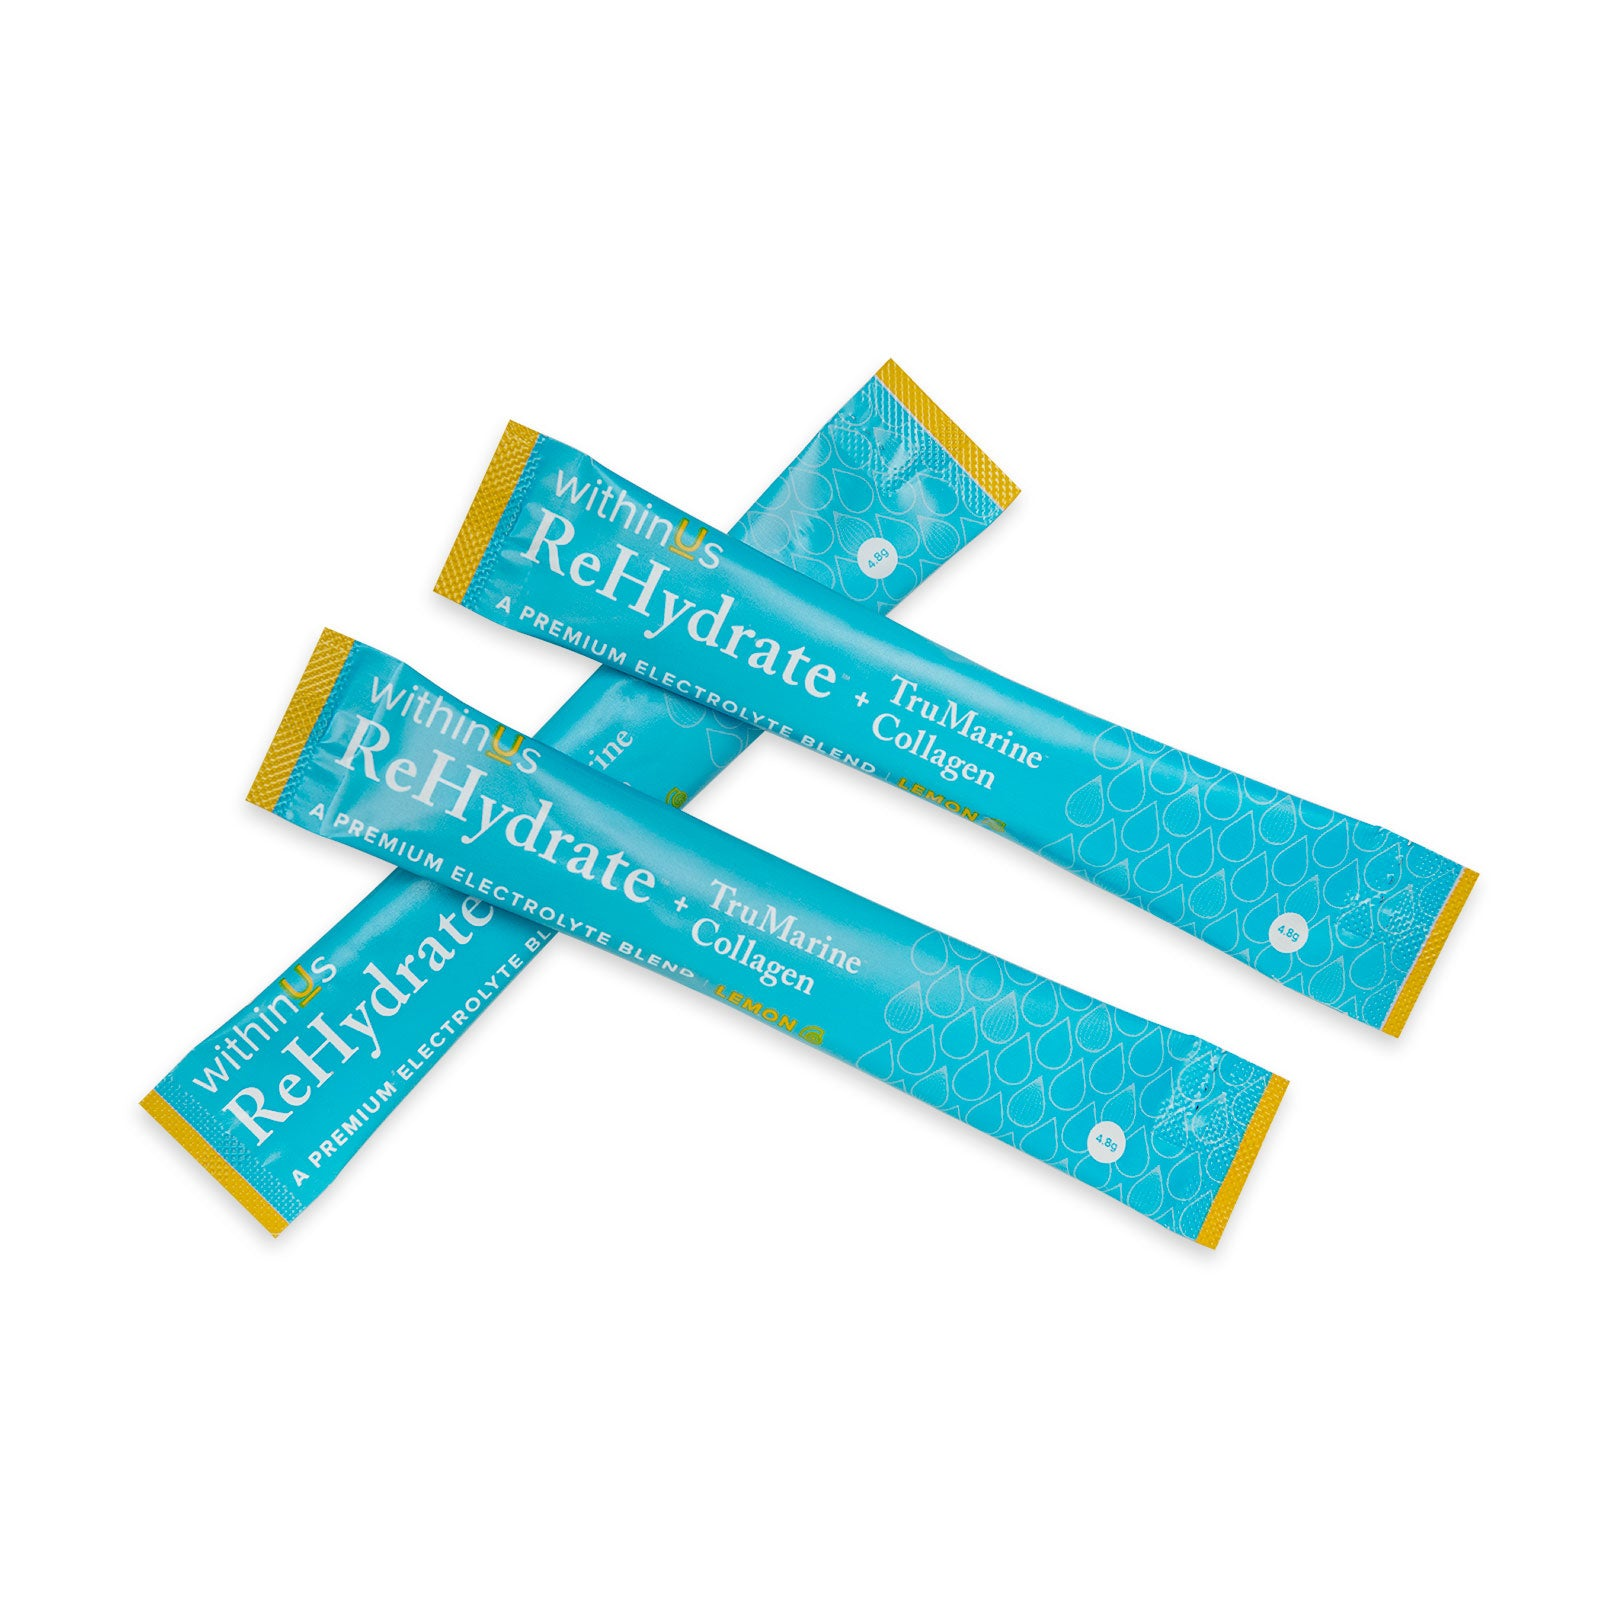 A photo of 3 withinUs ReHydrate + Collagen stick packs